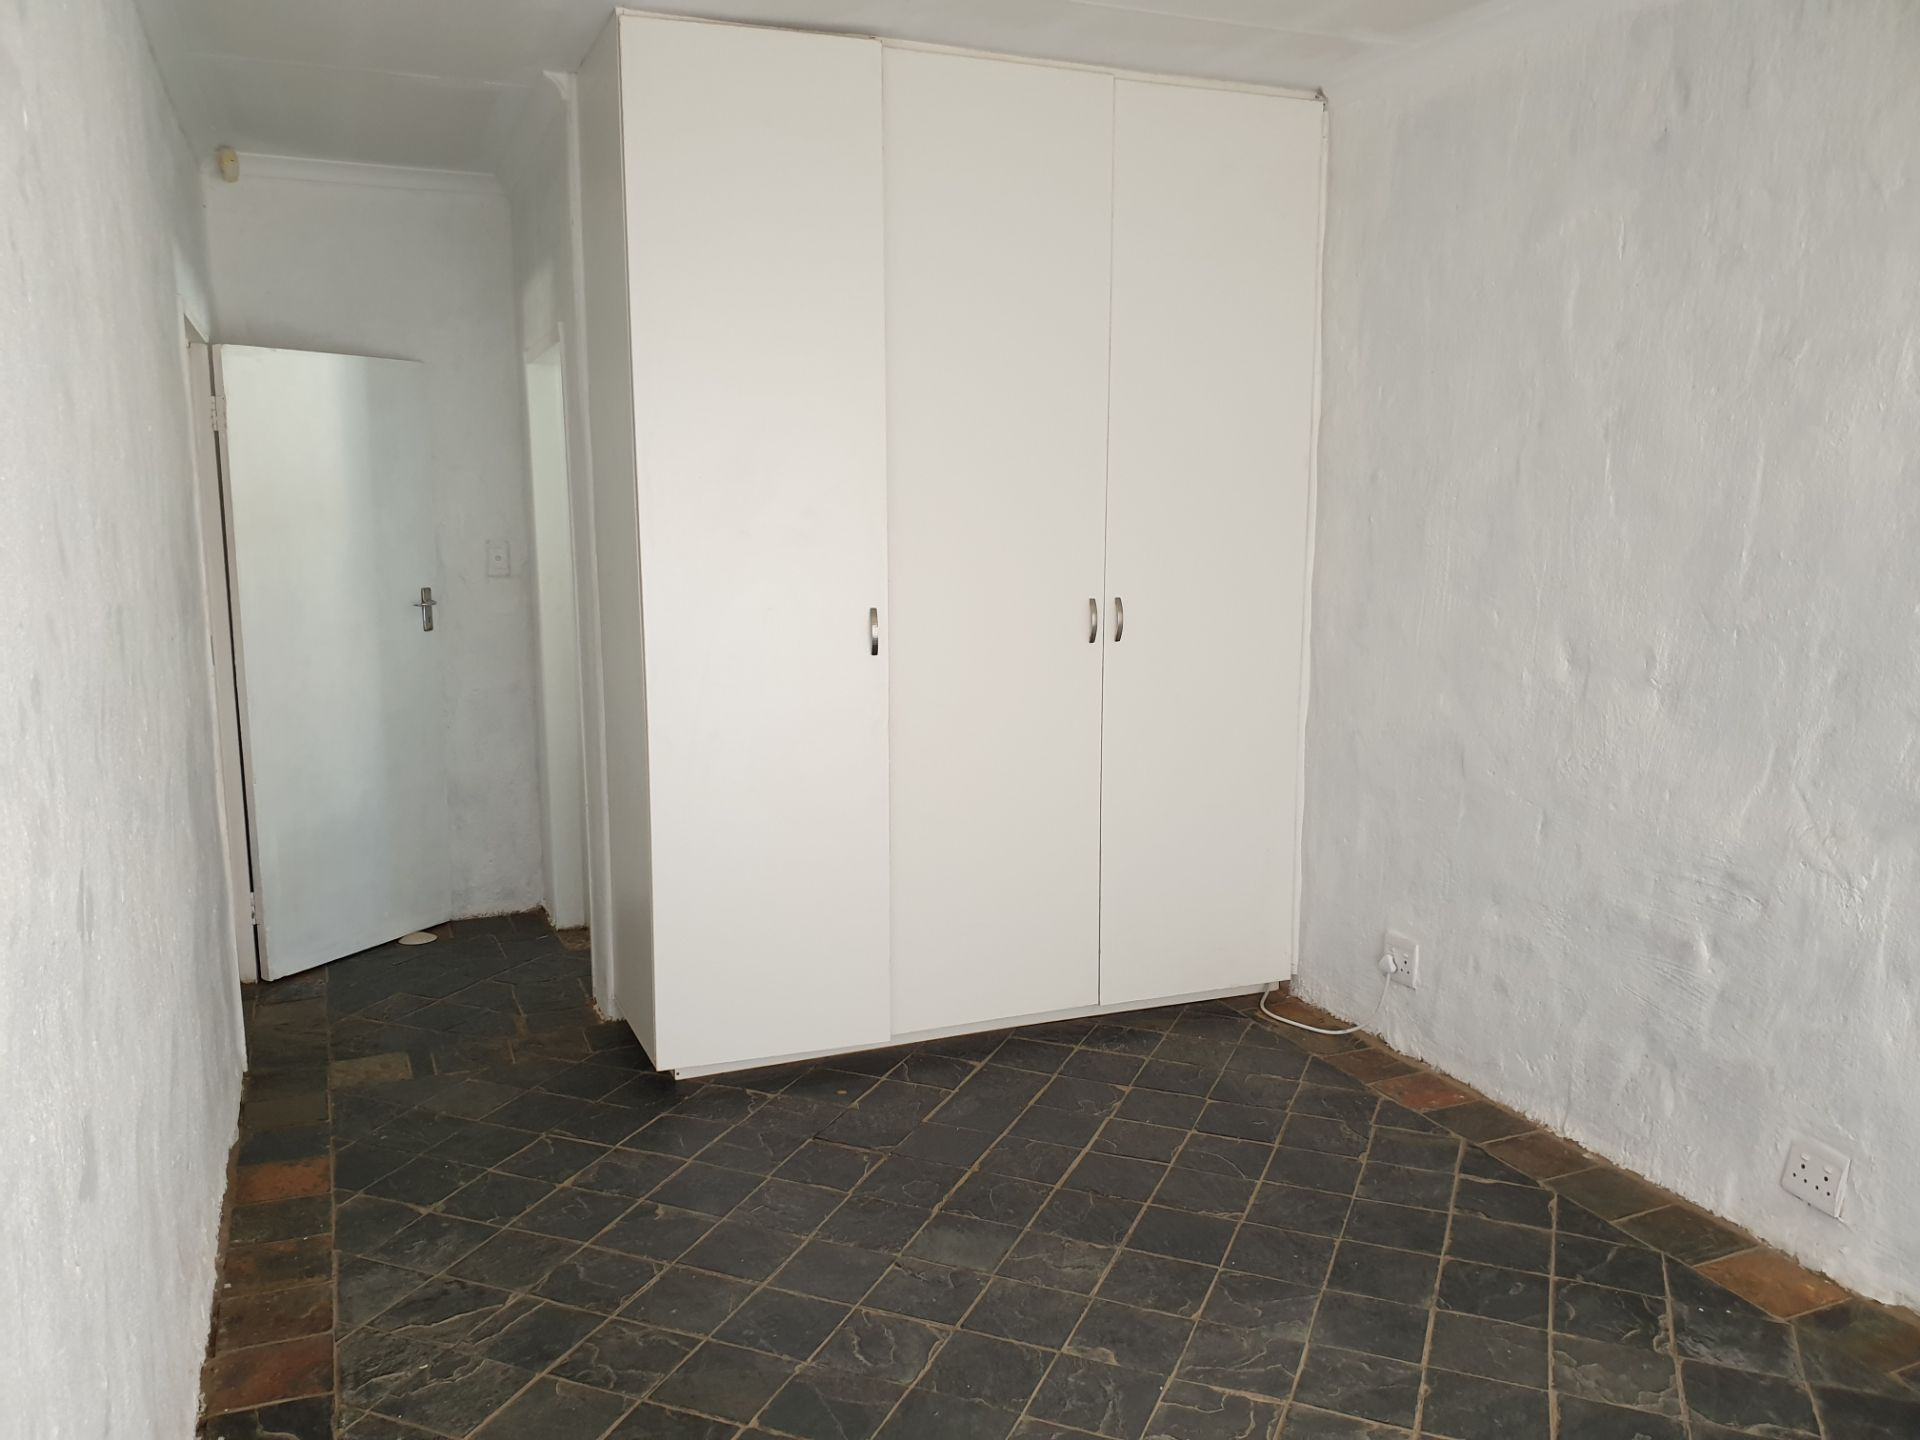 House in Miederpark - 20190403_120704.jpg